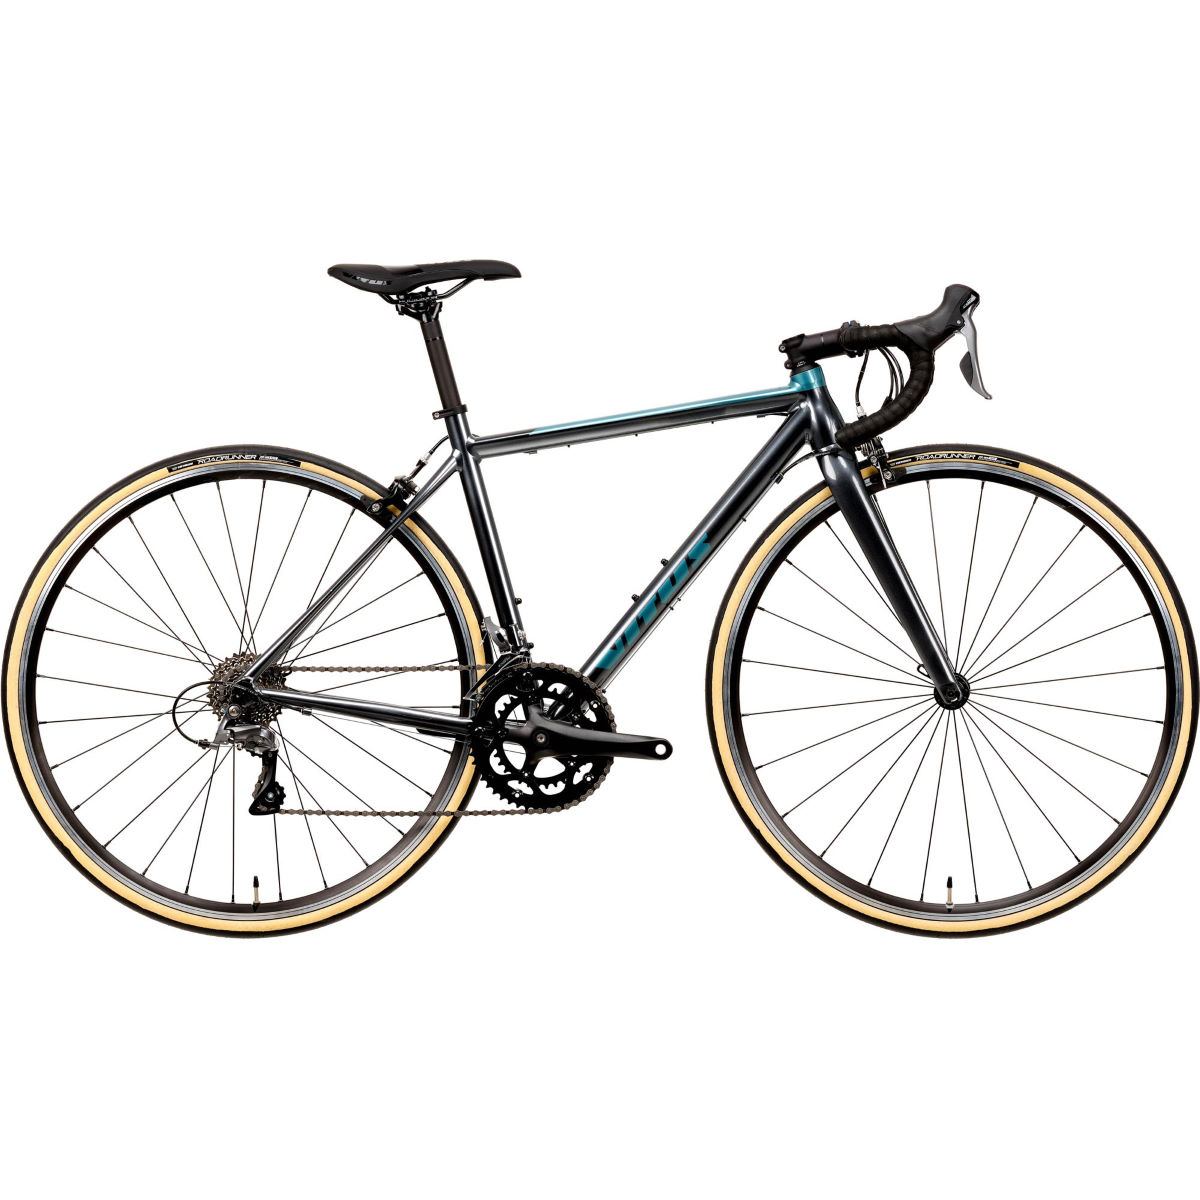 Vitus Vitus Razor Womens Road Bike (Claris - 2020)   Road Bikes